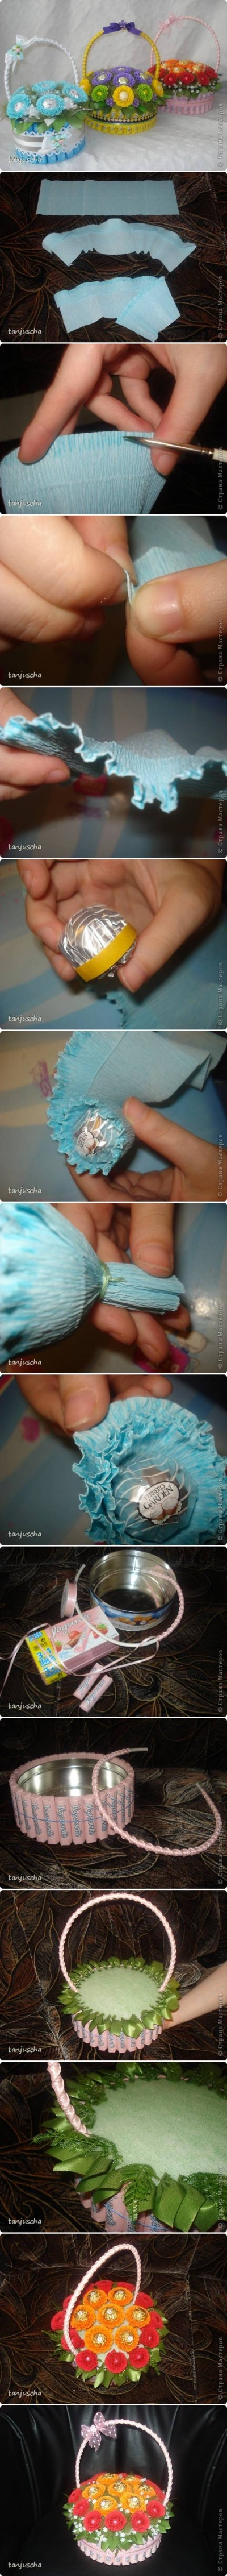 How to make Sweet Candy Basket step by step DIY tutorial instructions